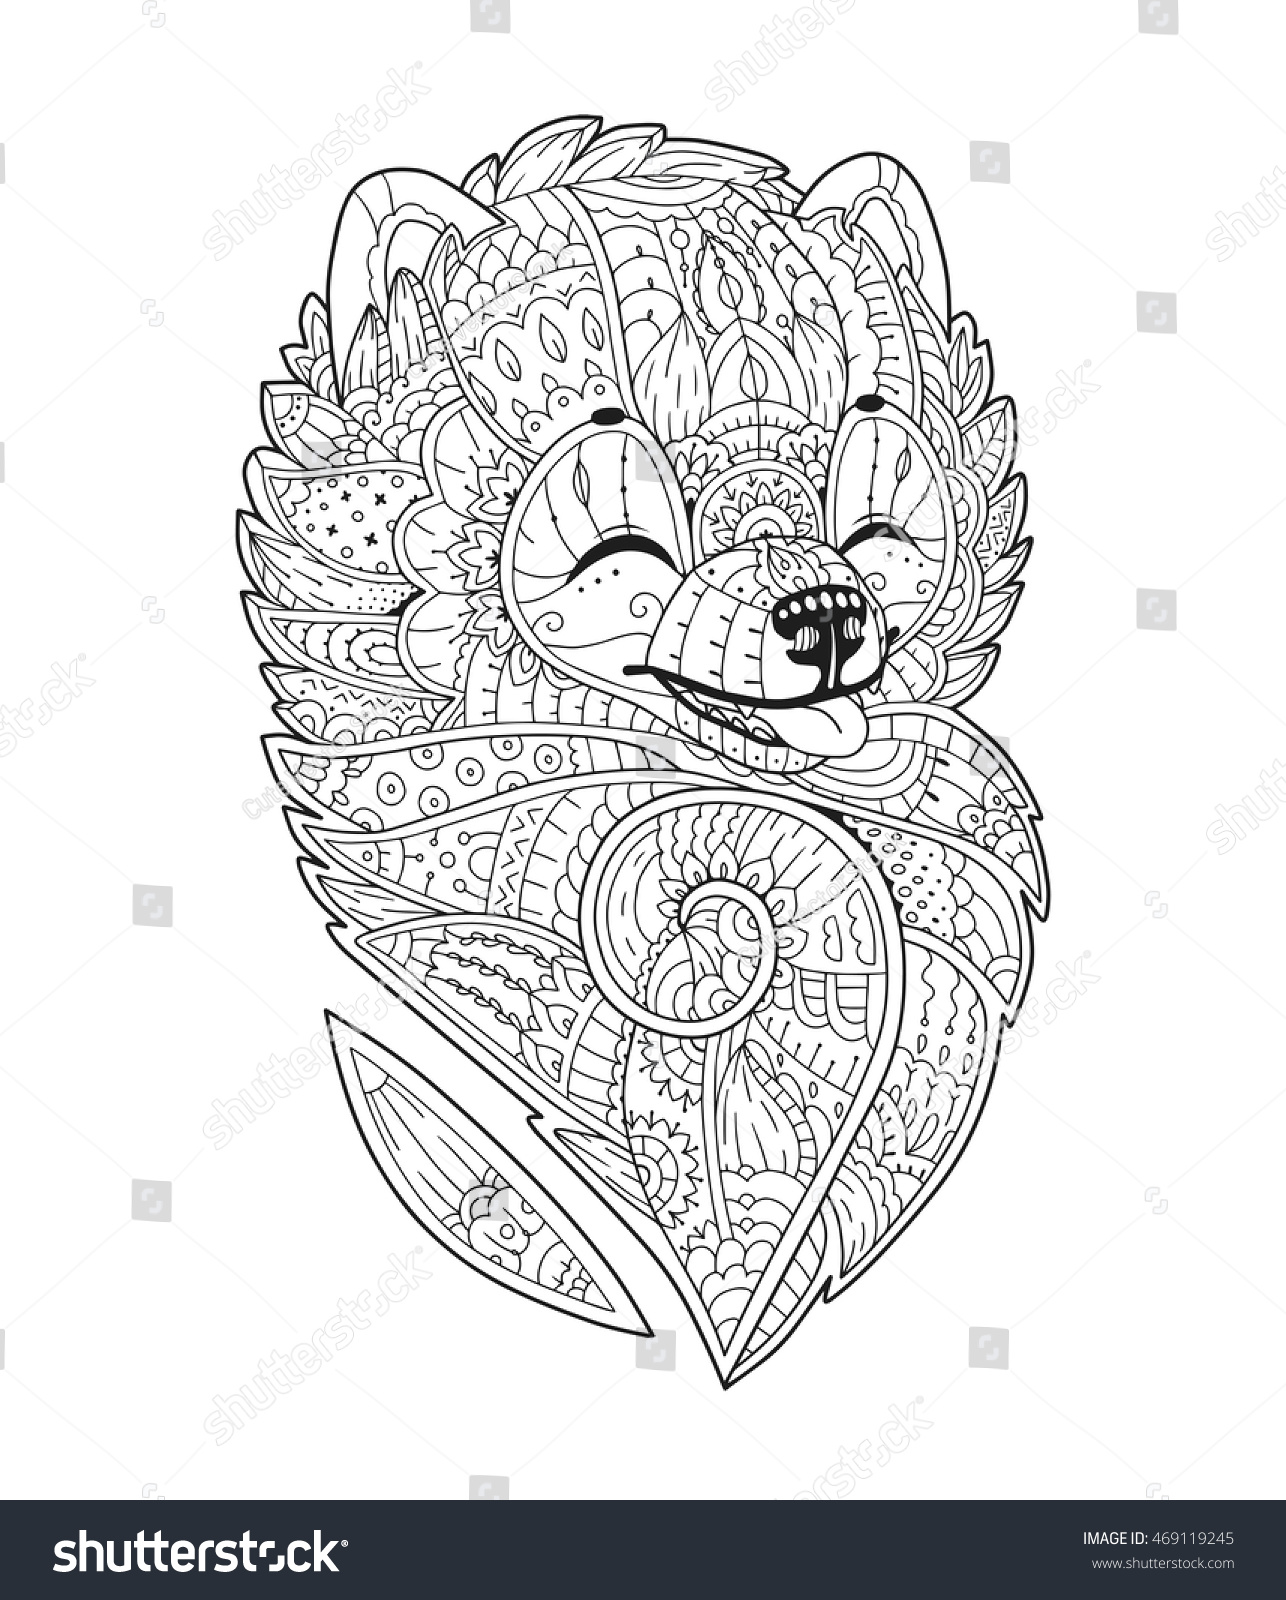 Zen Art Stylized Dog Vector Hand Stock Vector 469119245 - Shutterstock